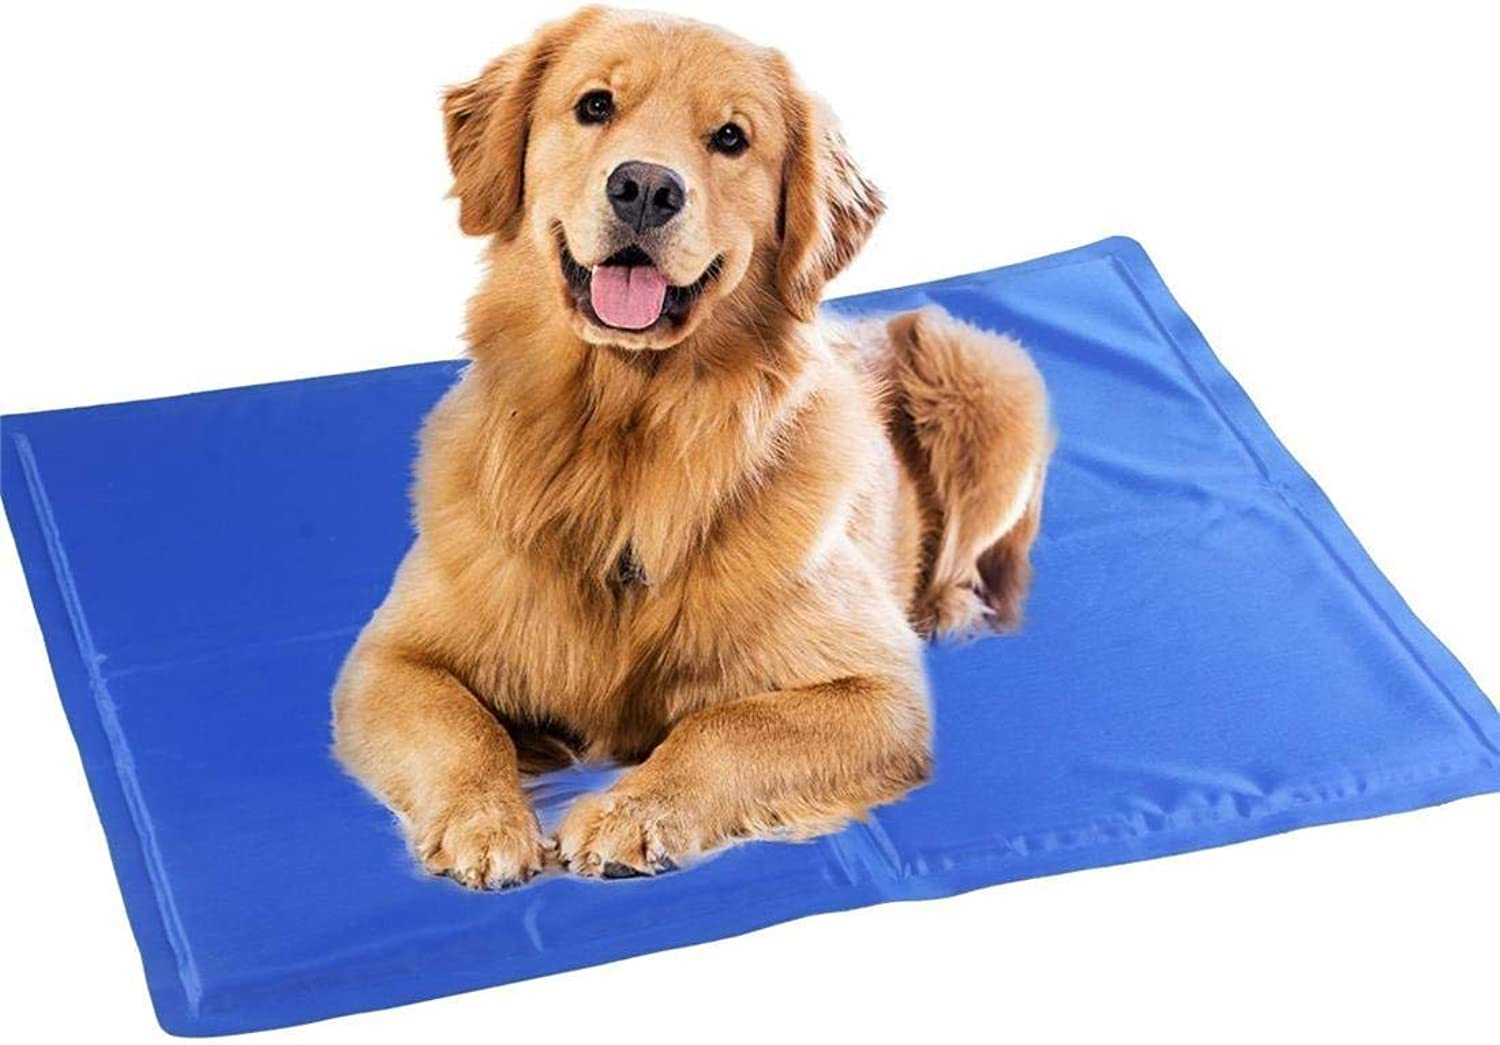 IANXI Home Dog Cat Ice Mat Bed Give Pet a Cool Summer Easy to Clean Durable Comfortable Resistant Scratch and Bite XS 40  30cm for Cat Dog